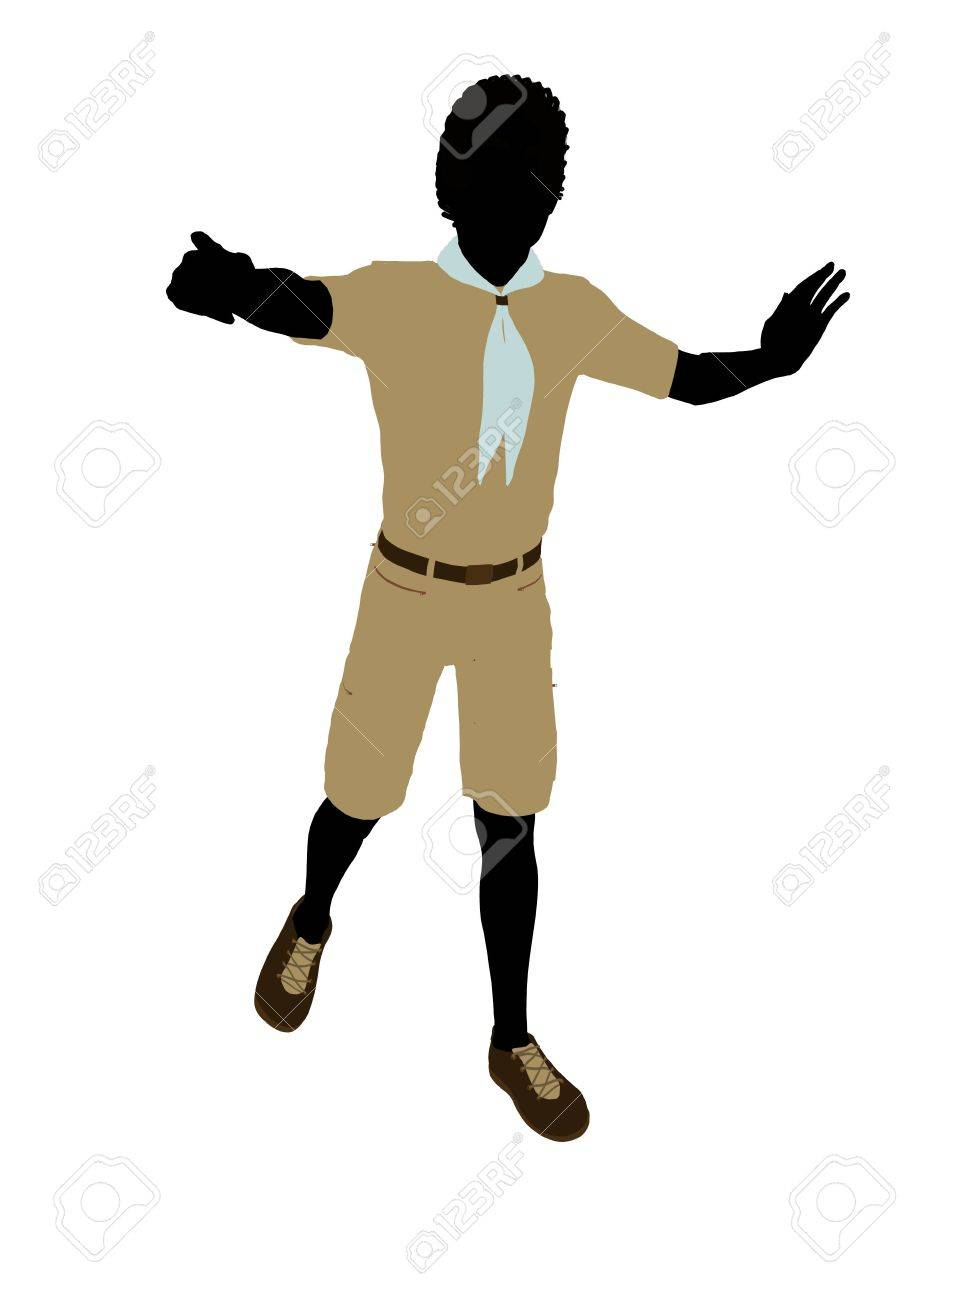 African American Boy Scout silhouette dressed in shorts on a white background Stock Photo - 6324034